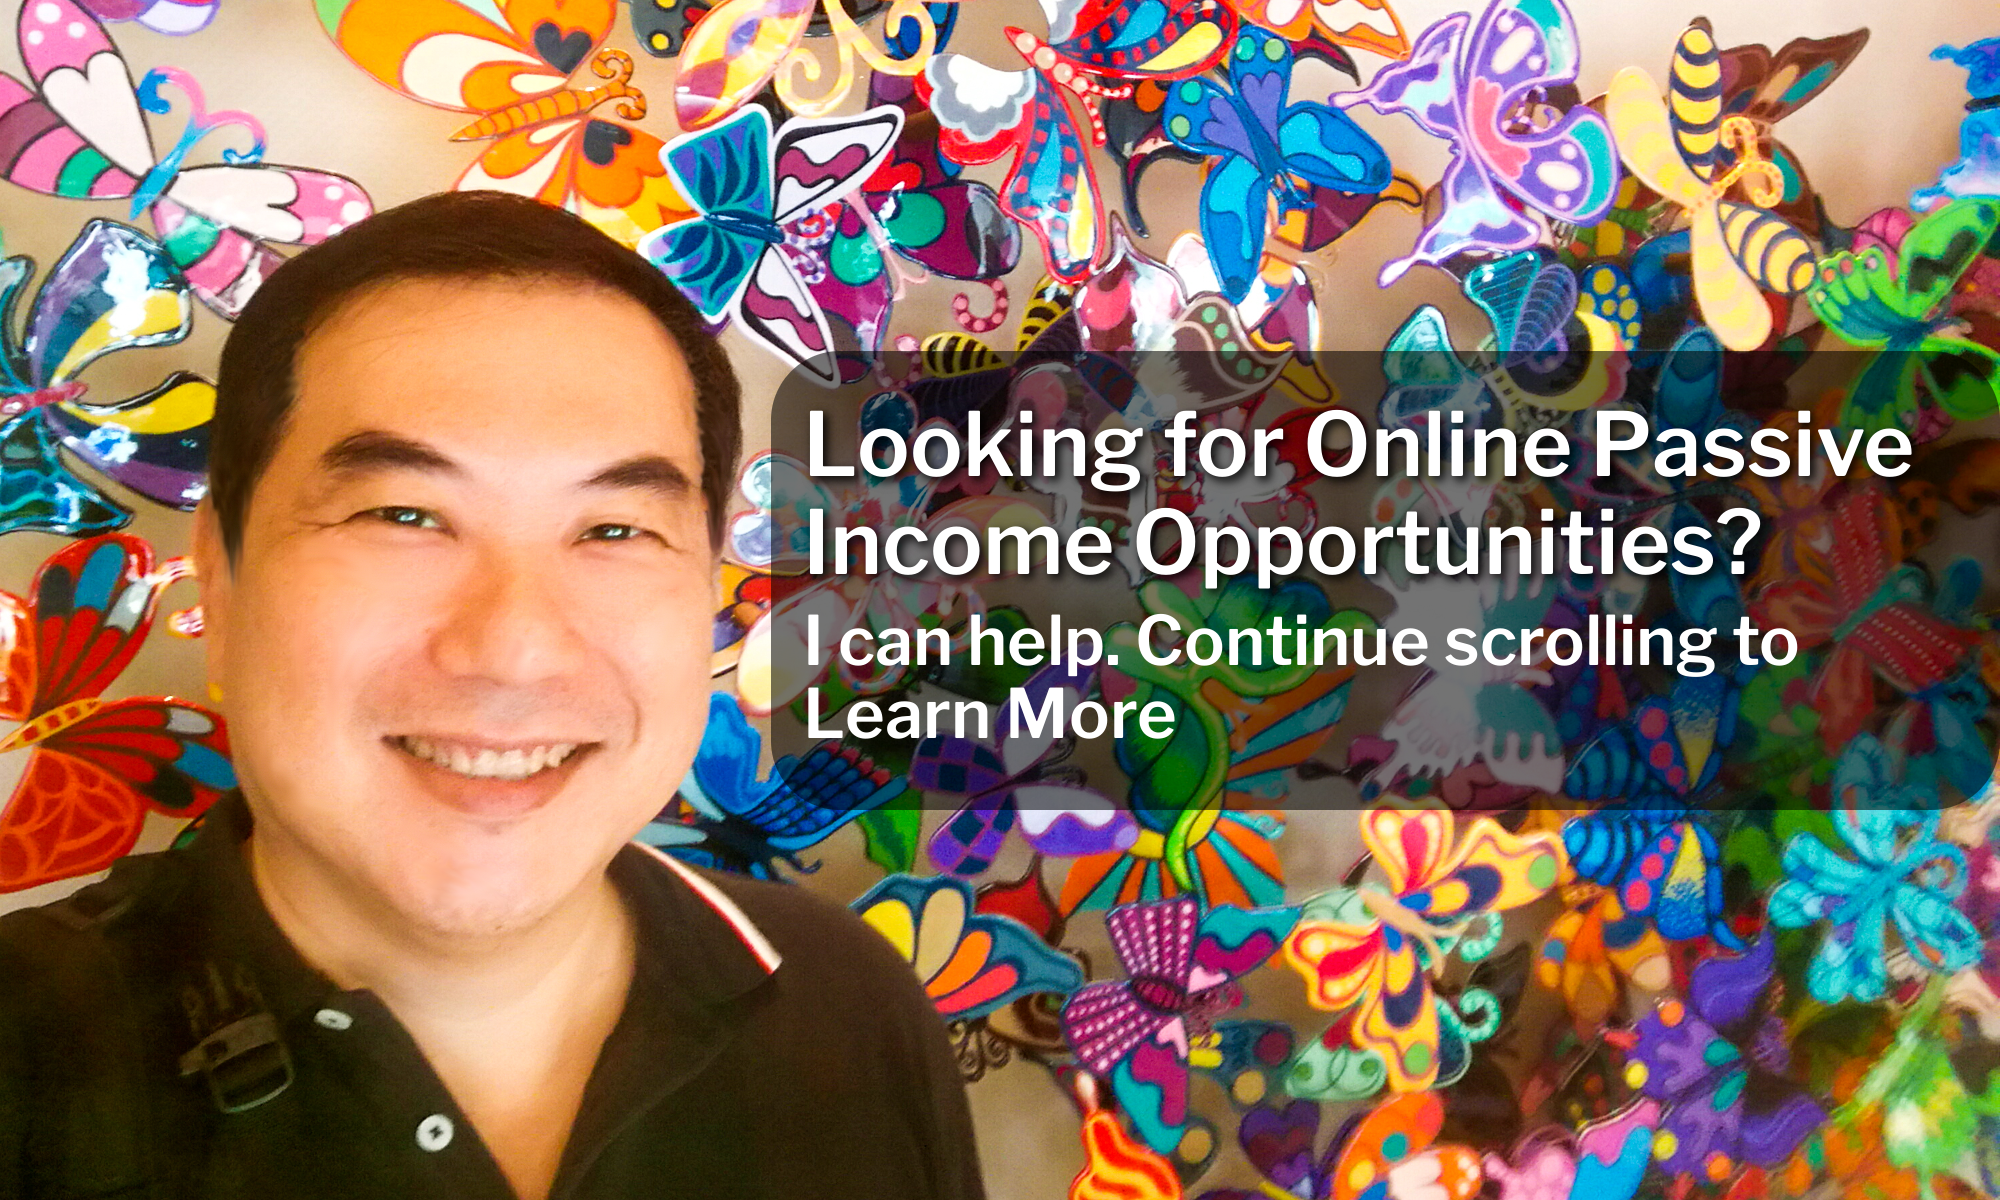 Online Passive Income Opportunities